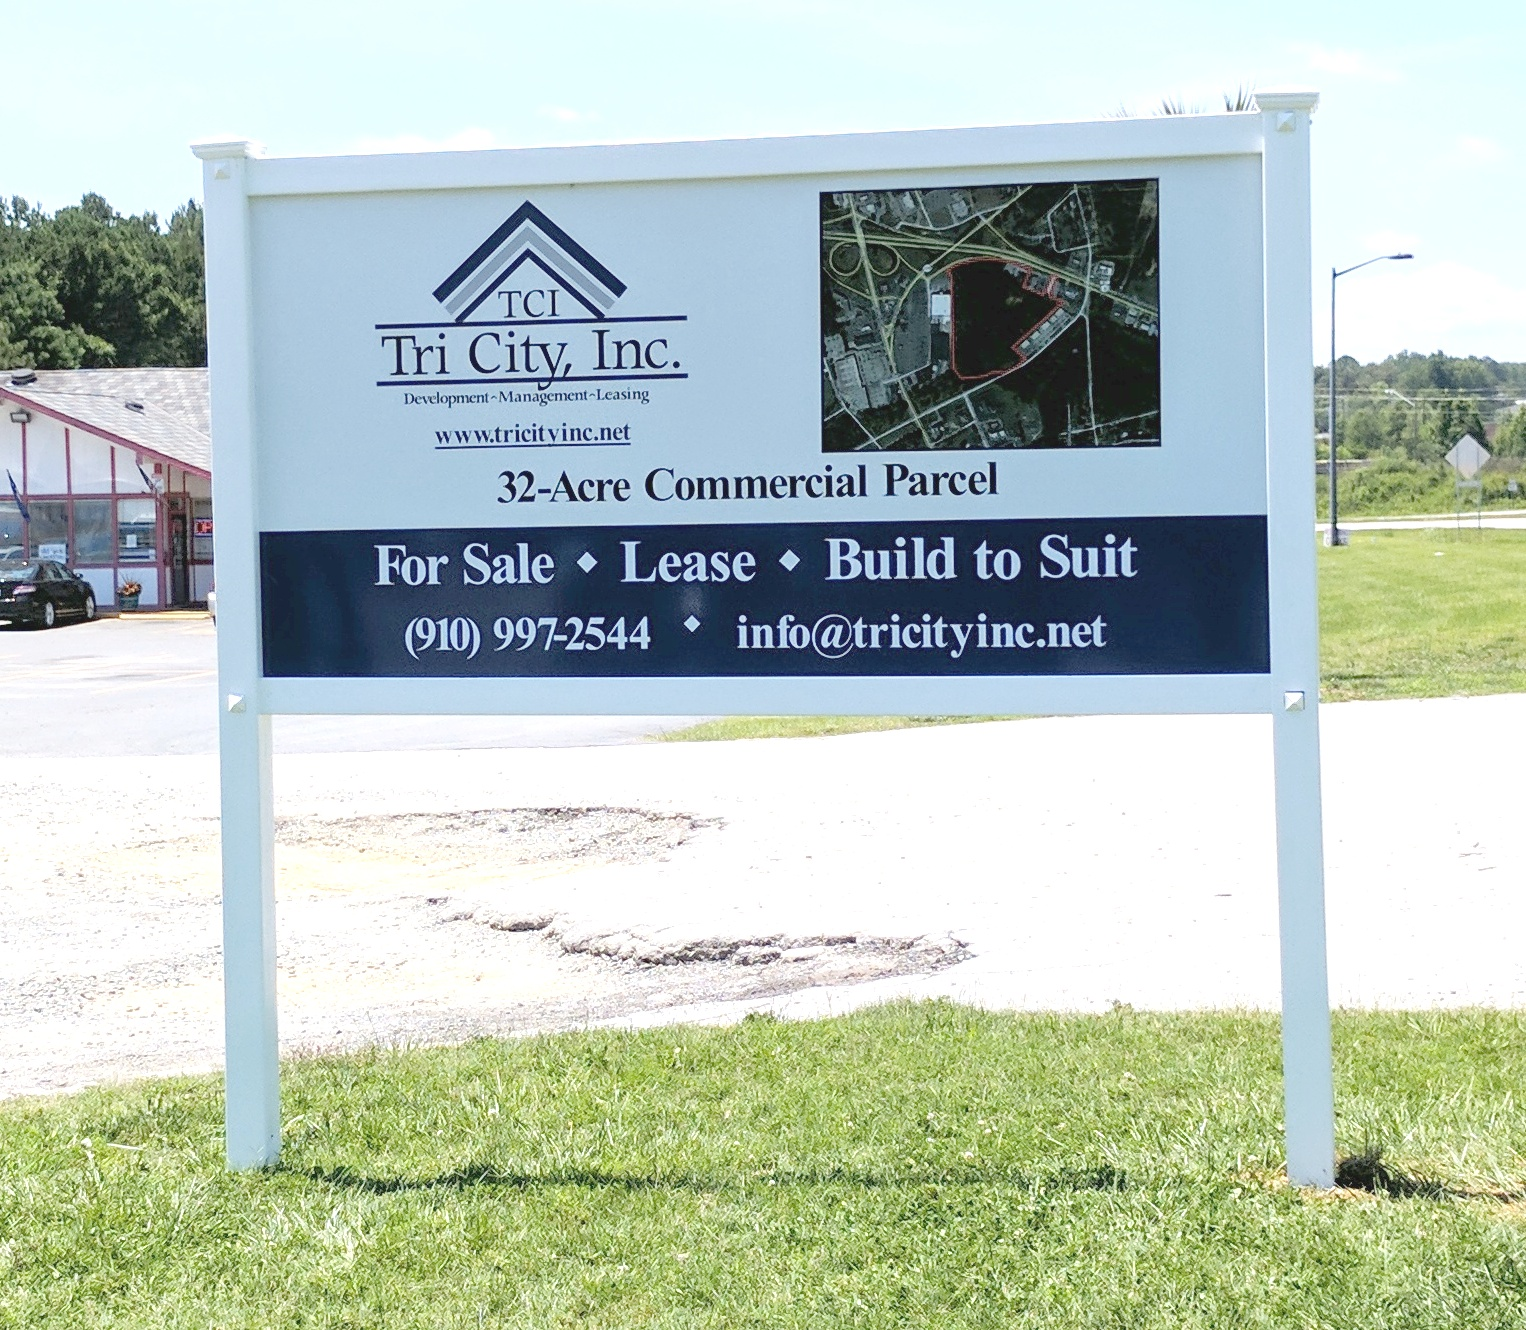 Land for sale pvc frame composite panel sign classic signs nc320x240